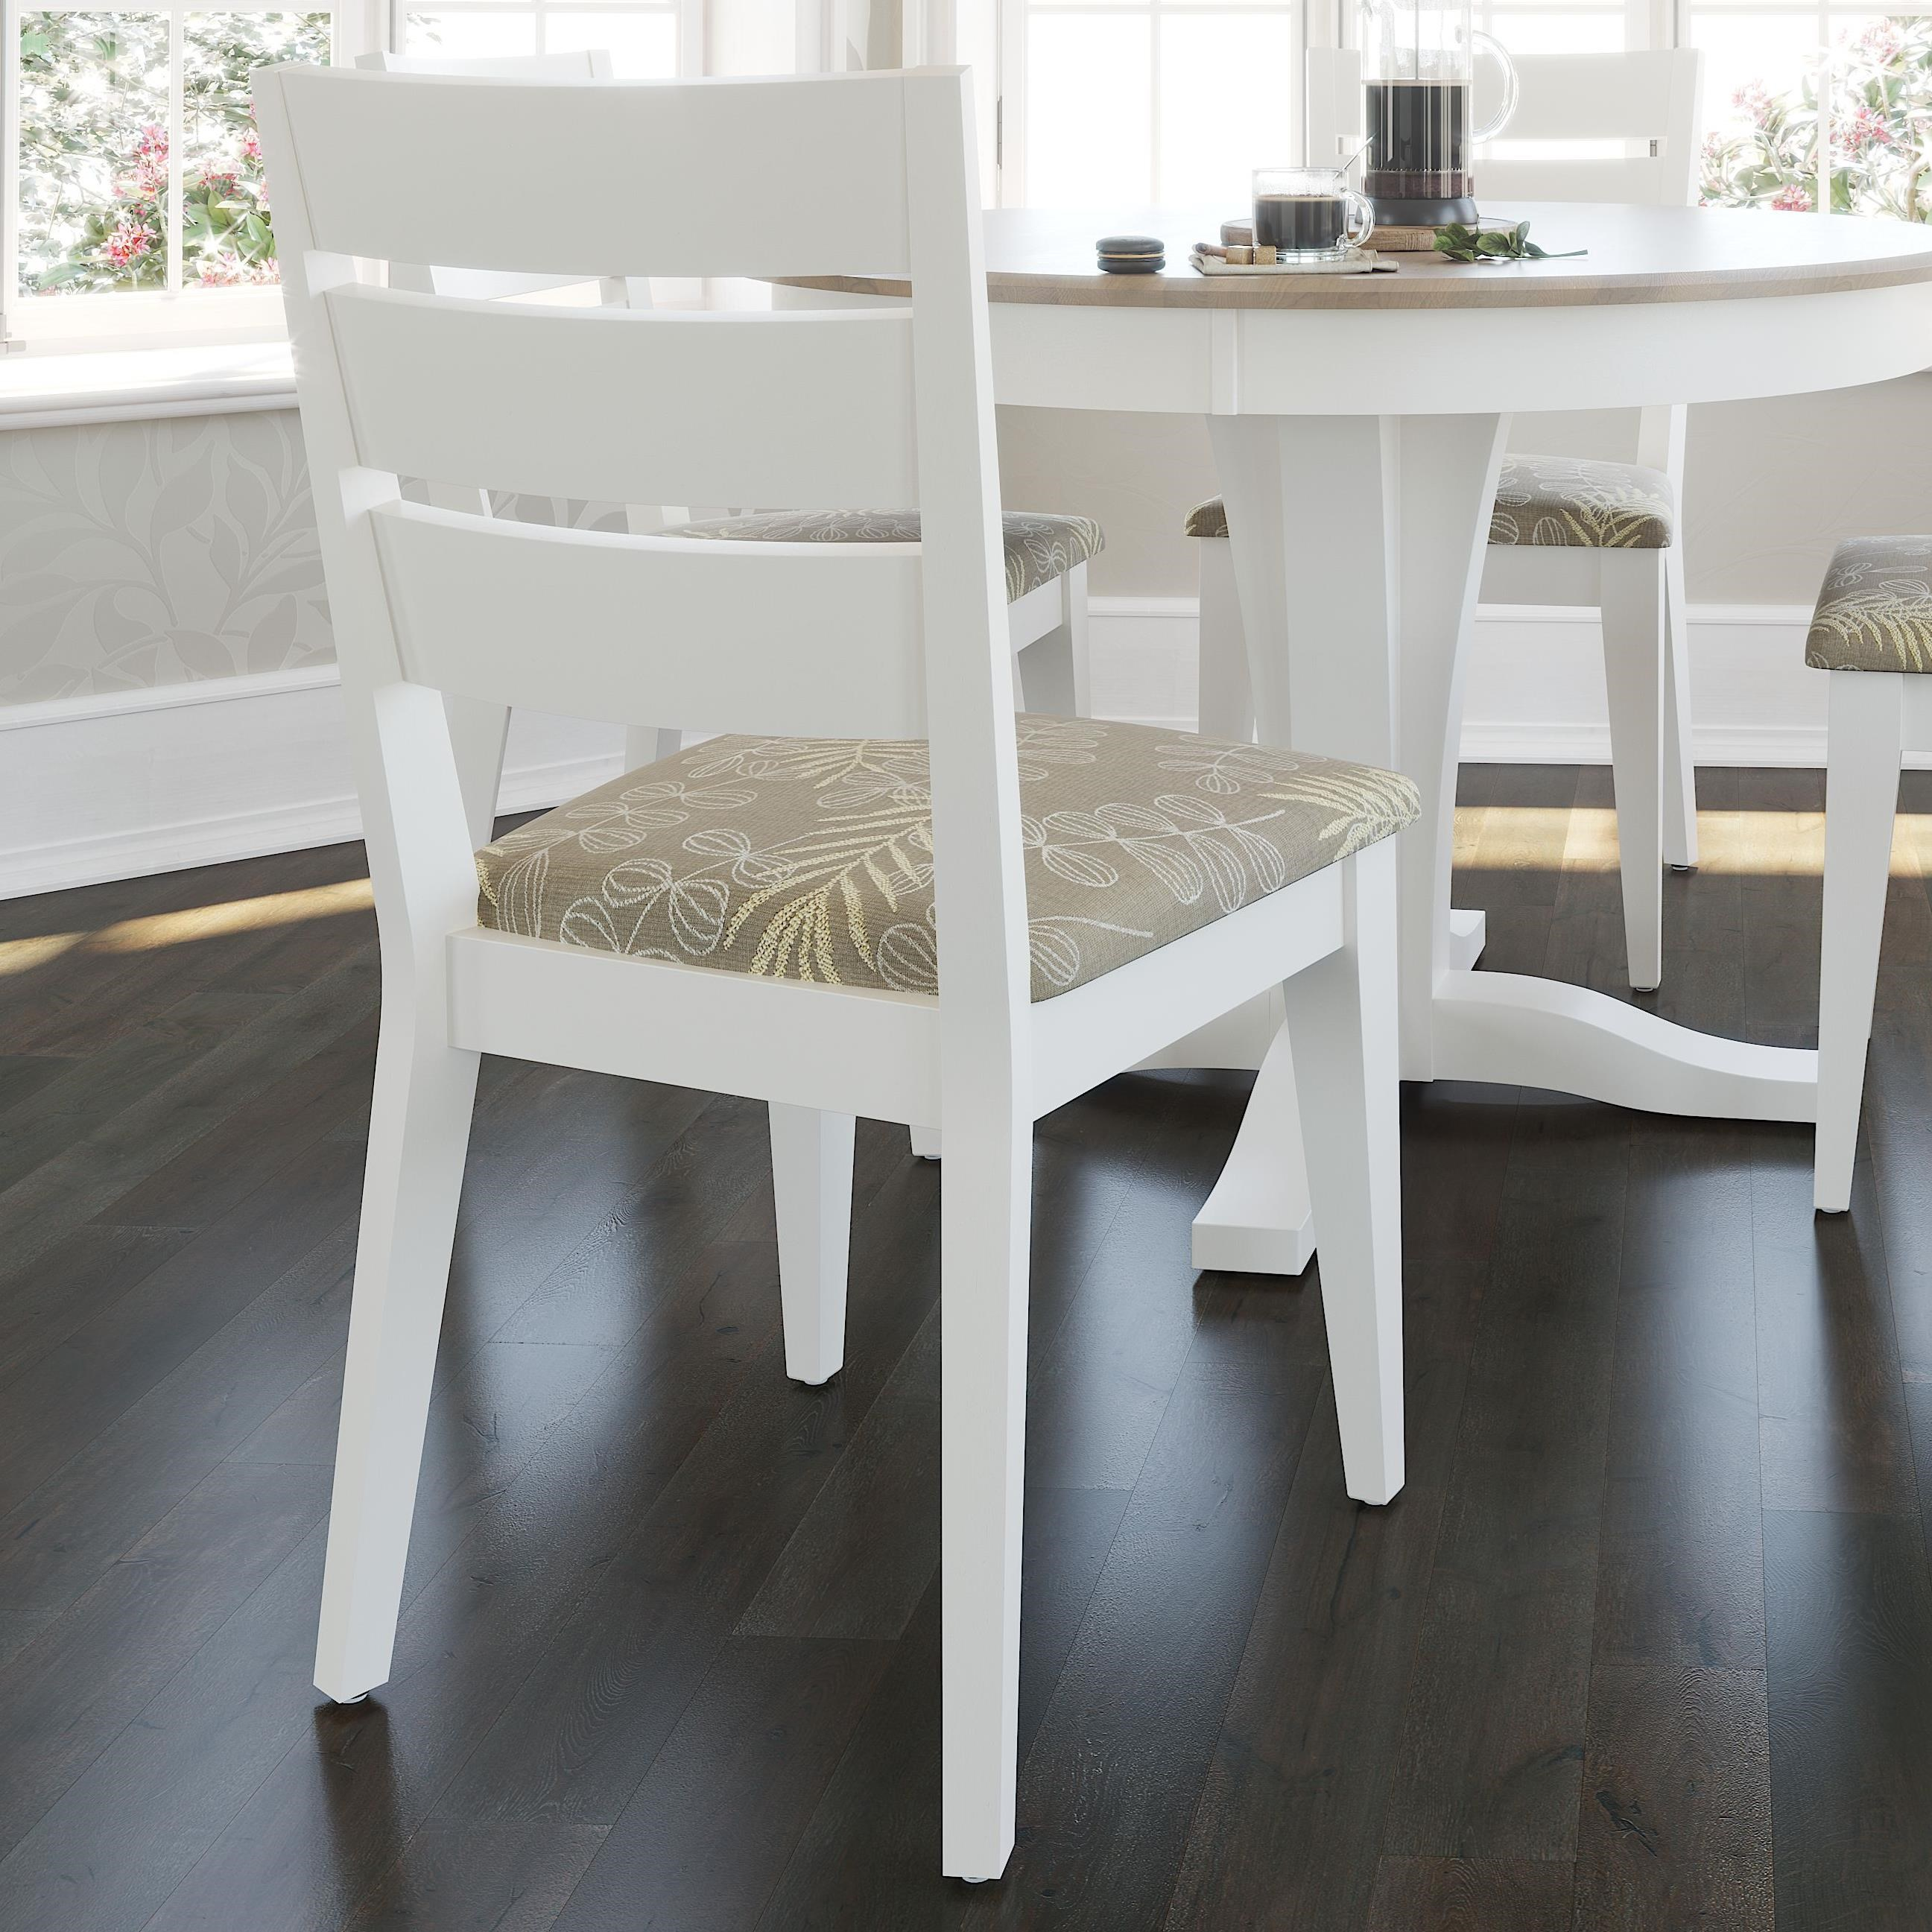 Gourmet - Custom Dining Customizable Chair with Ladder Back by Canadel at Dinette Depot